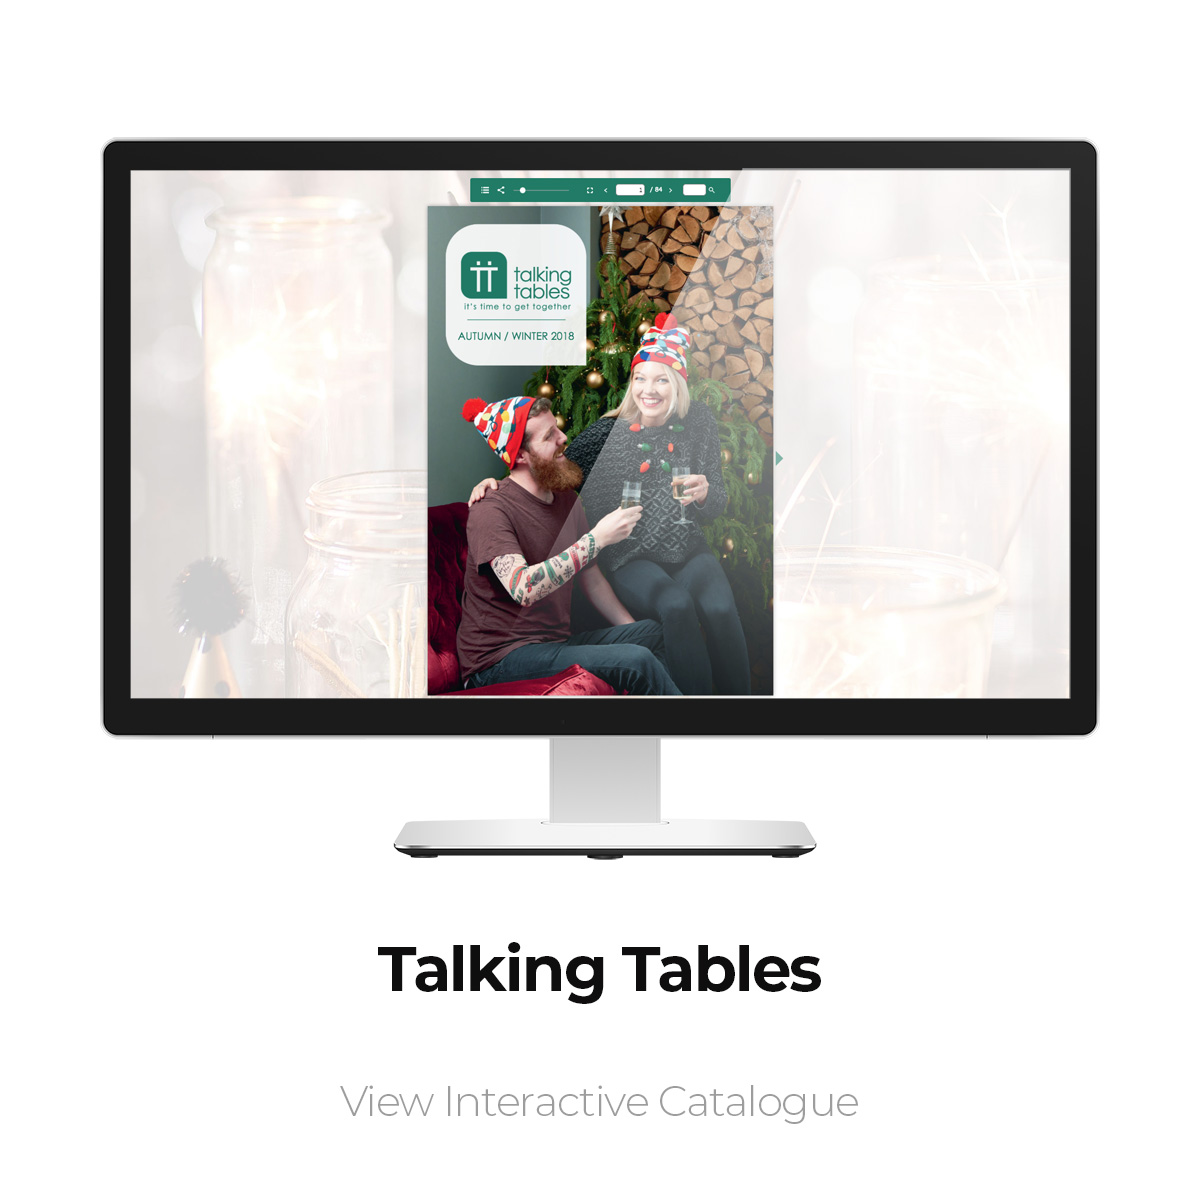 Talking Tables Interactive Catalogue